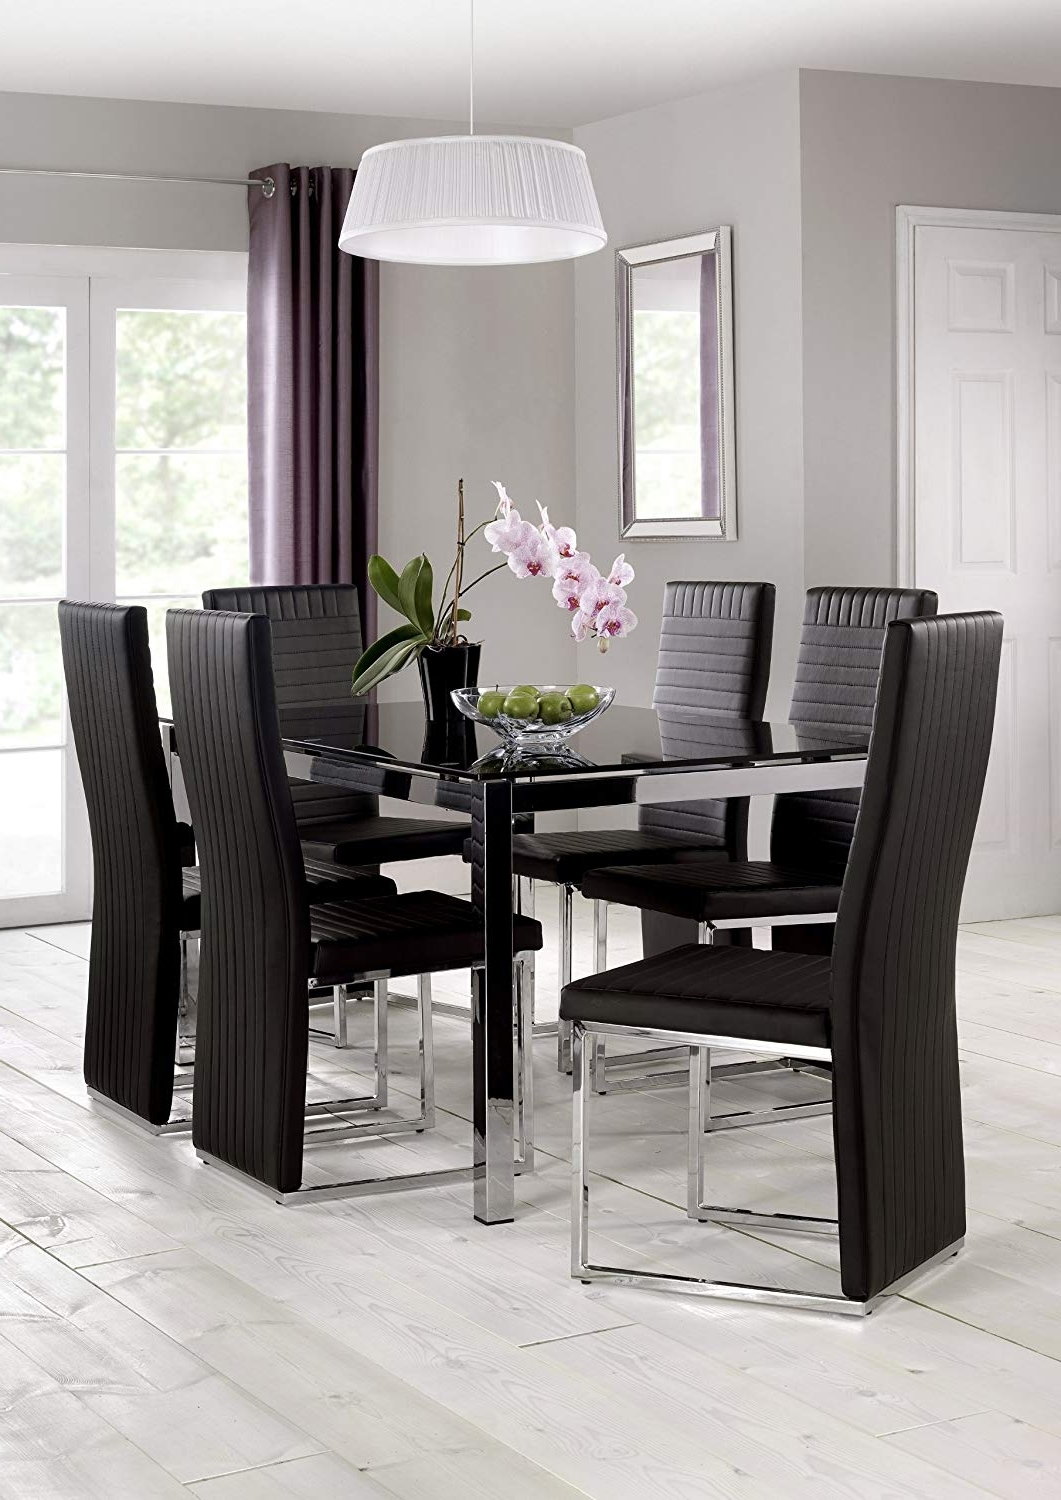 Most Current Glass Dining Tables With 6 Chairs Intended For Julian Bowen Tempo Glass Dining Table, Chrome/black: Amazon.co (View 6 of 25)